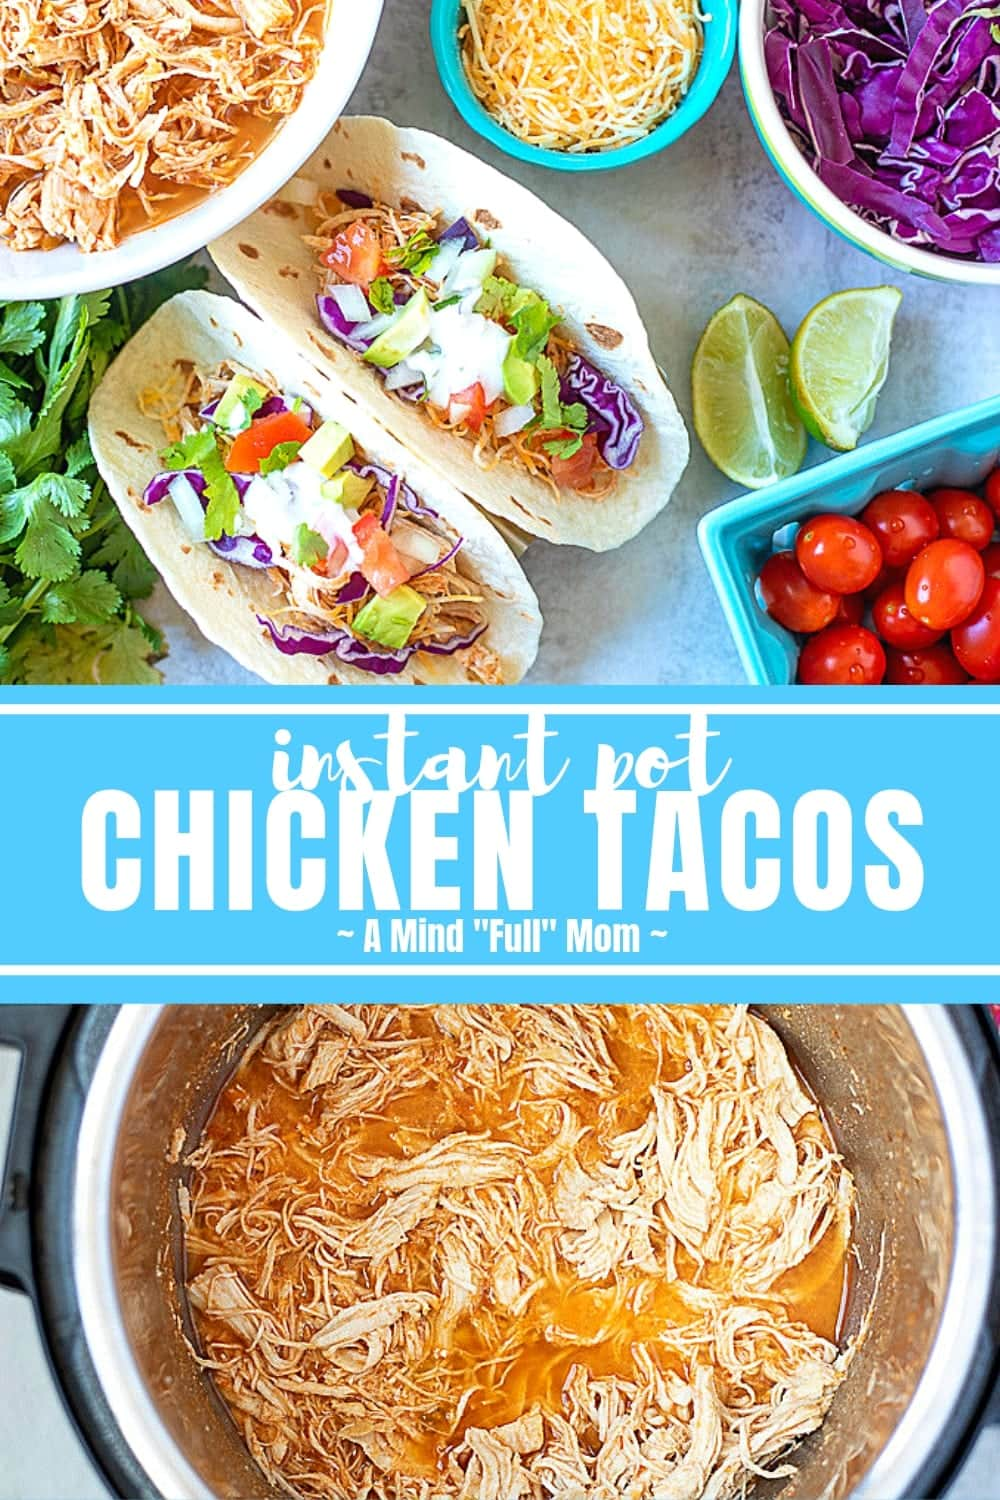 Taco night just got a whole lot easier with these Instant Pot Chicken Tacos! This recipe for Instant Pot Chicken Tacos is simple and made with ingredients you probably have lying around--but the flavor is spectacular!